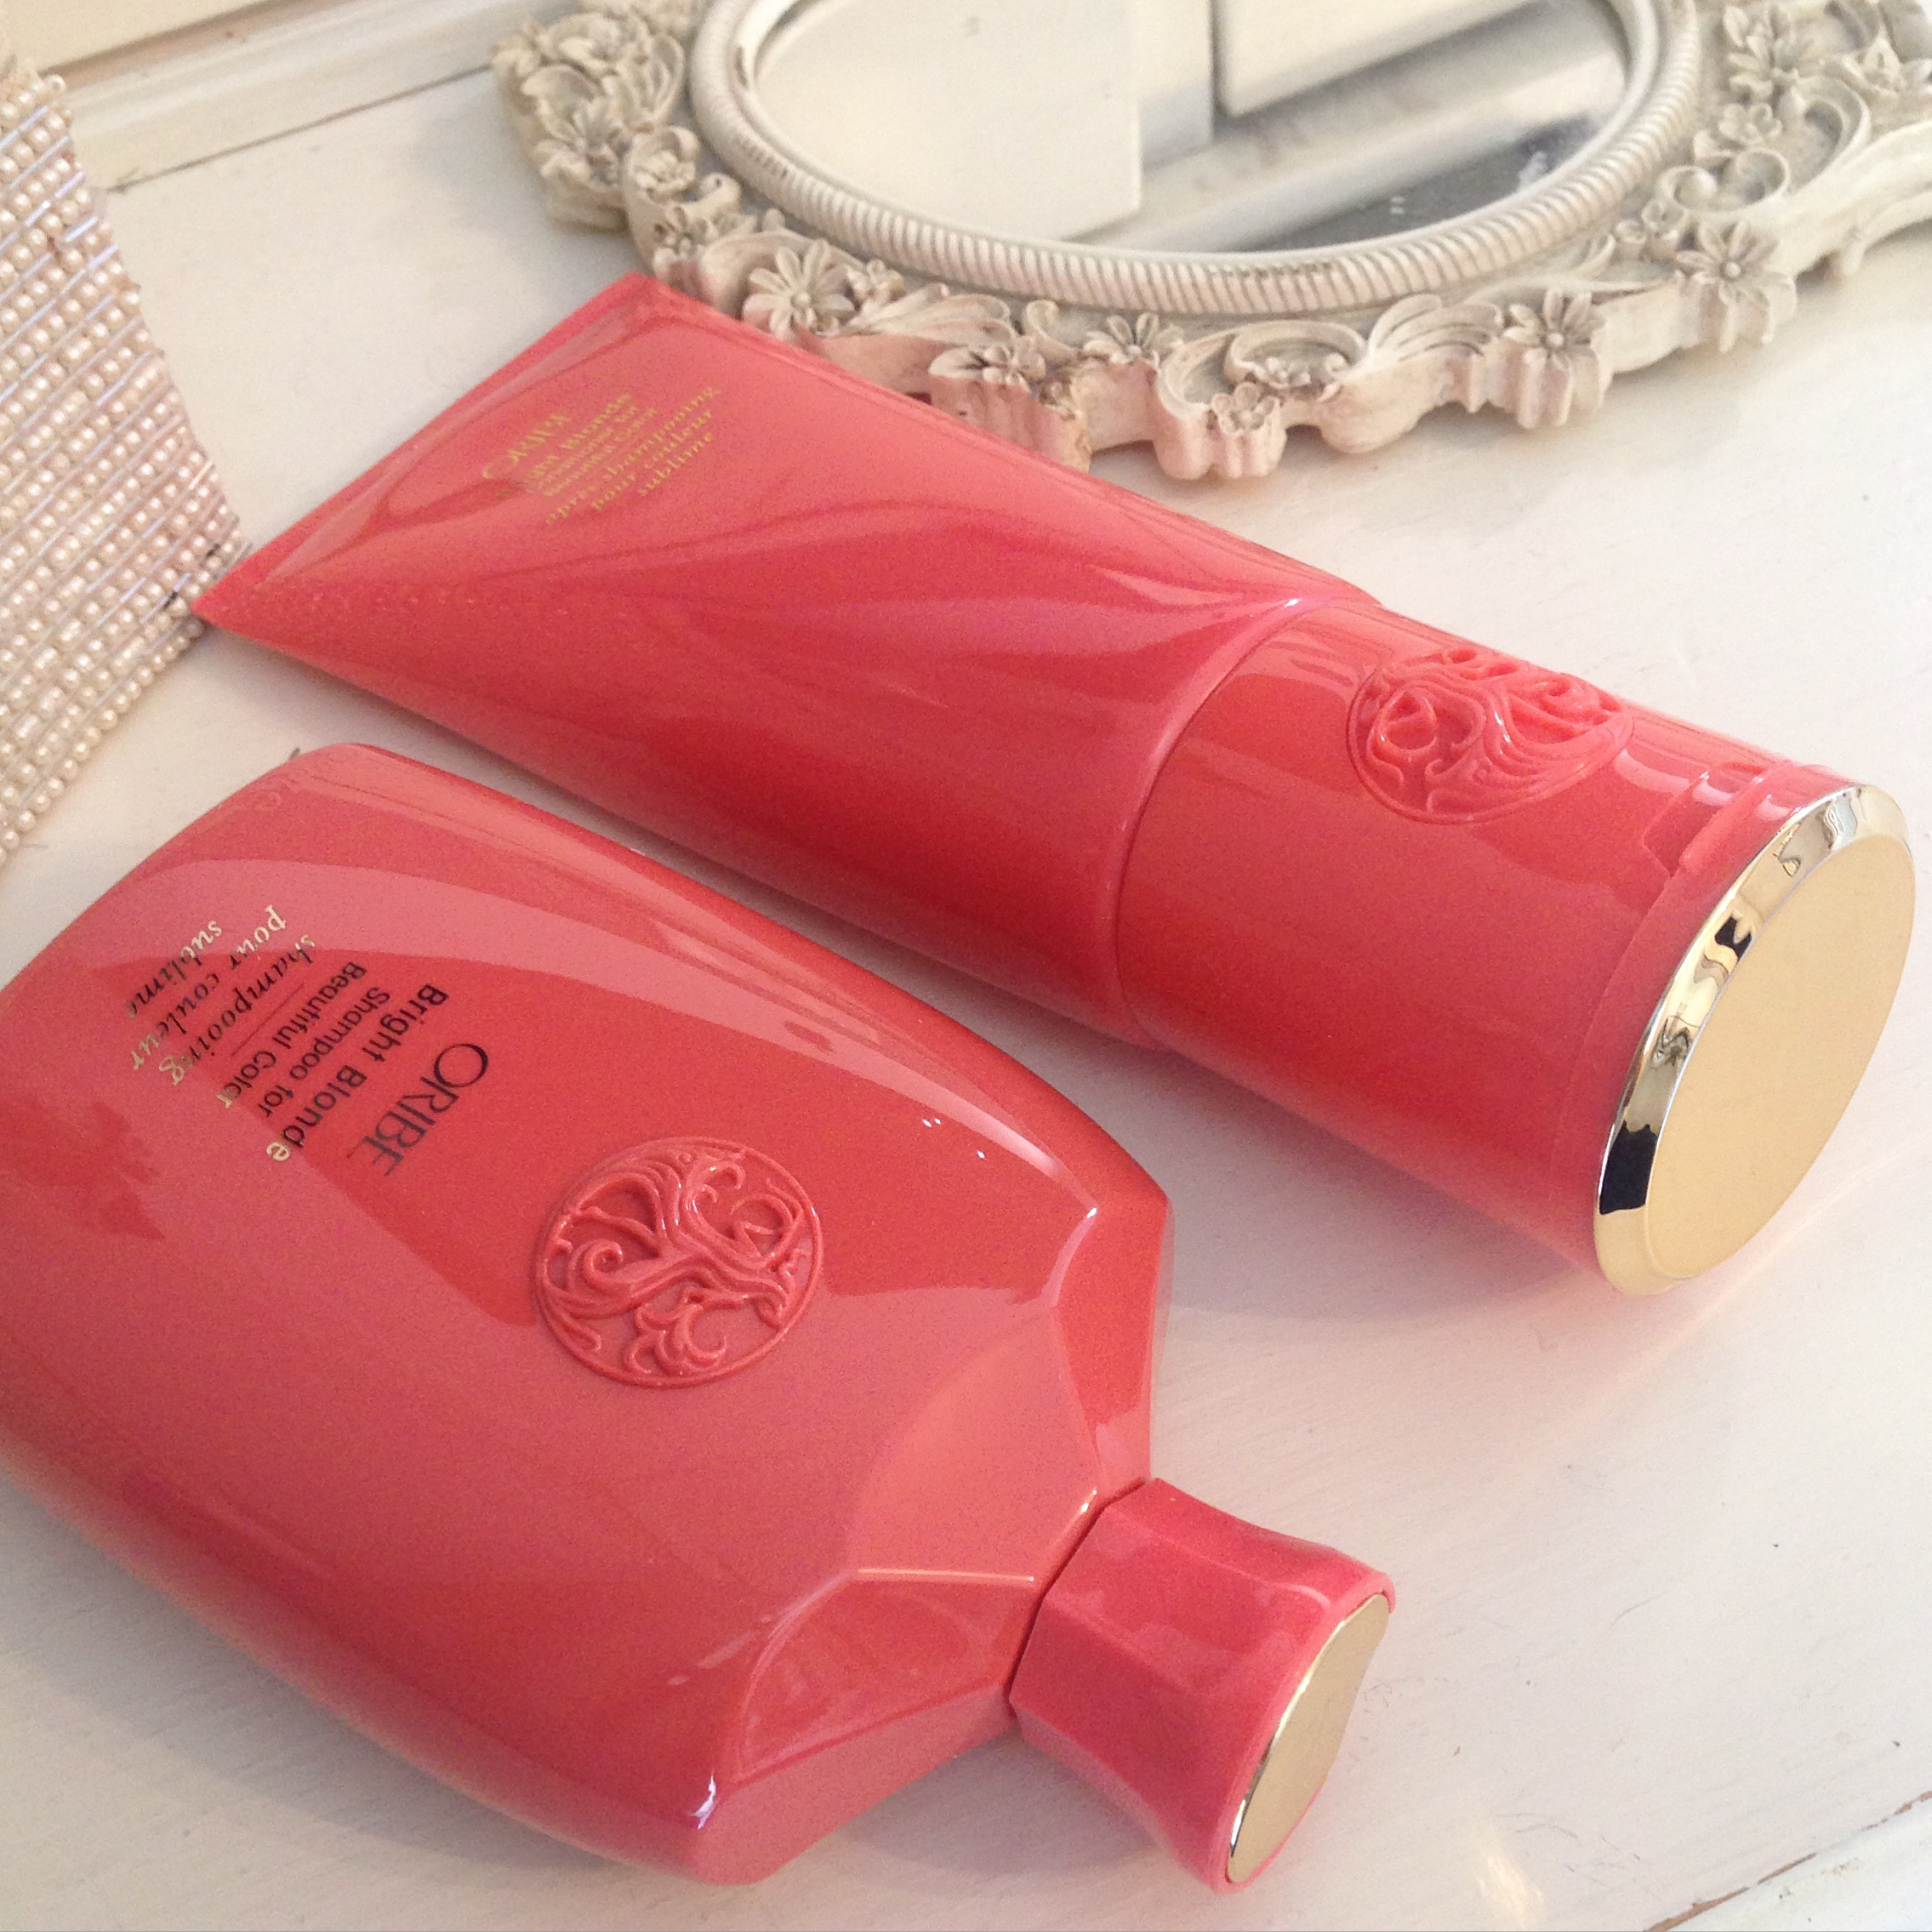 Oribe Shampoo Review Oribe Bright Blonde Shampoo Conditioner For Beautiful